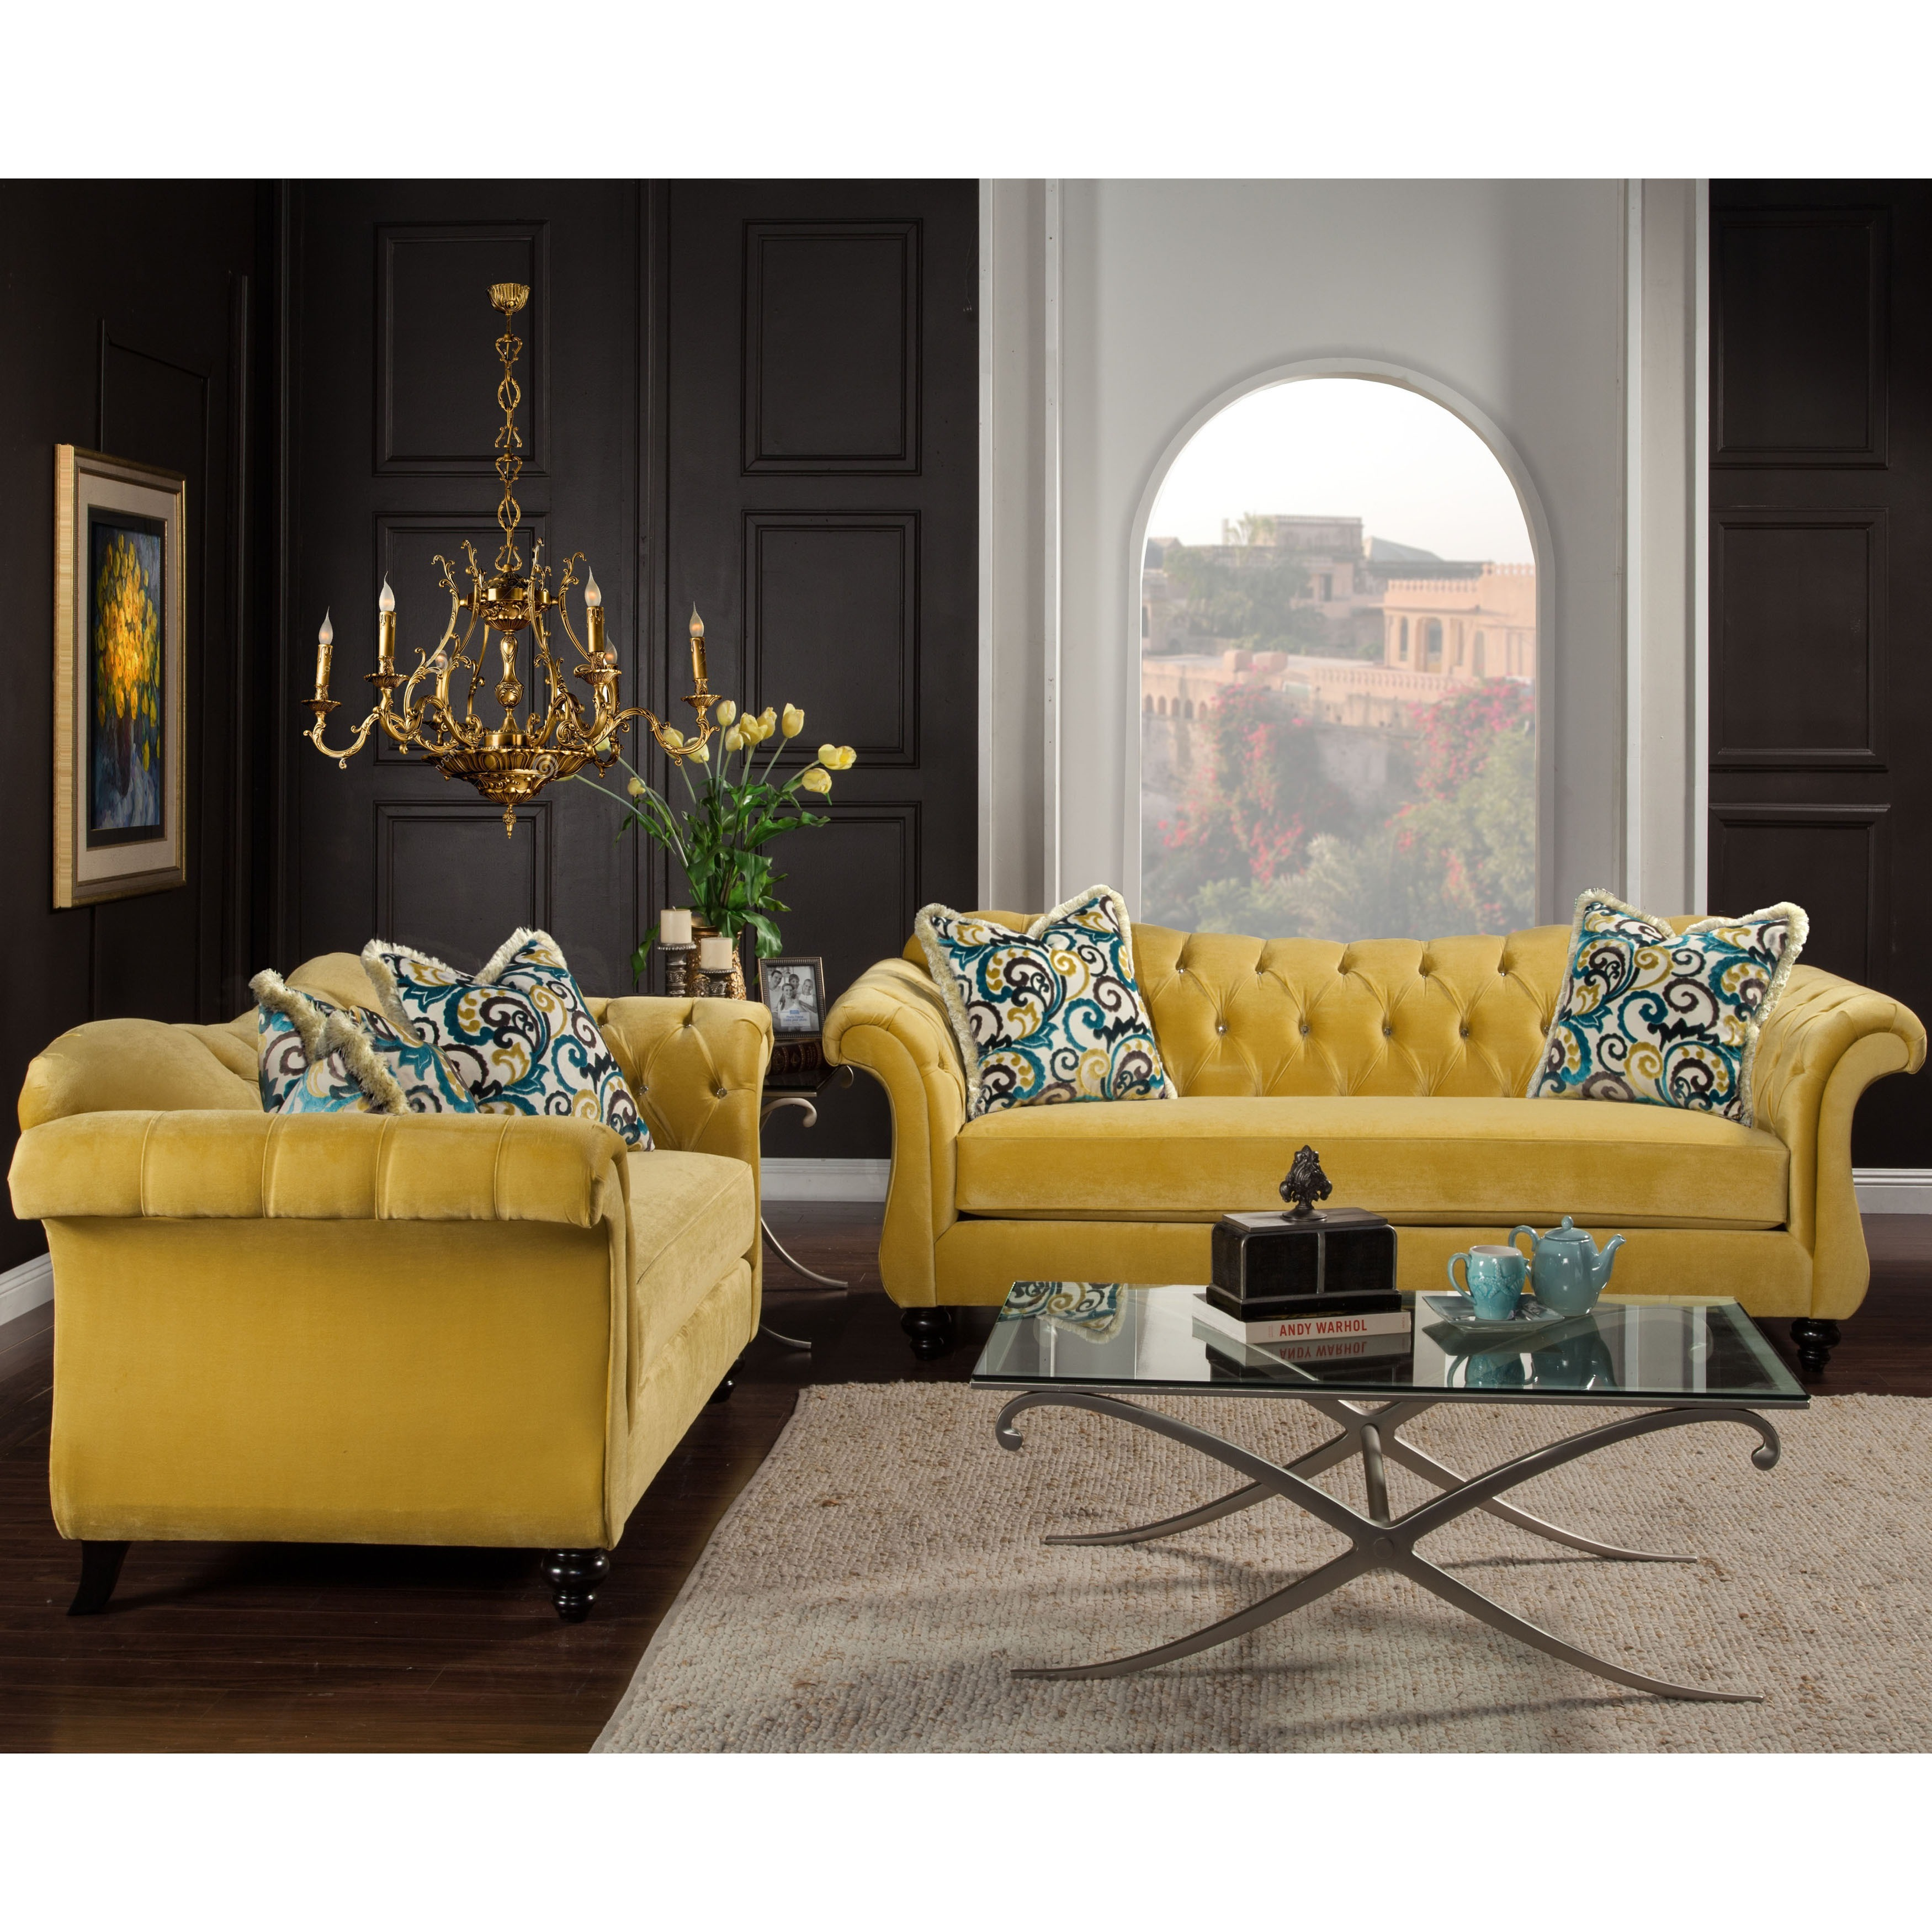 Furniture Of America Perm Traditional Velvet Tufted 2 Piece Sofa Set On Sale Overstock 8876256